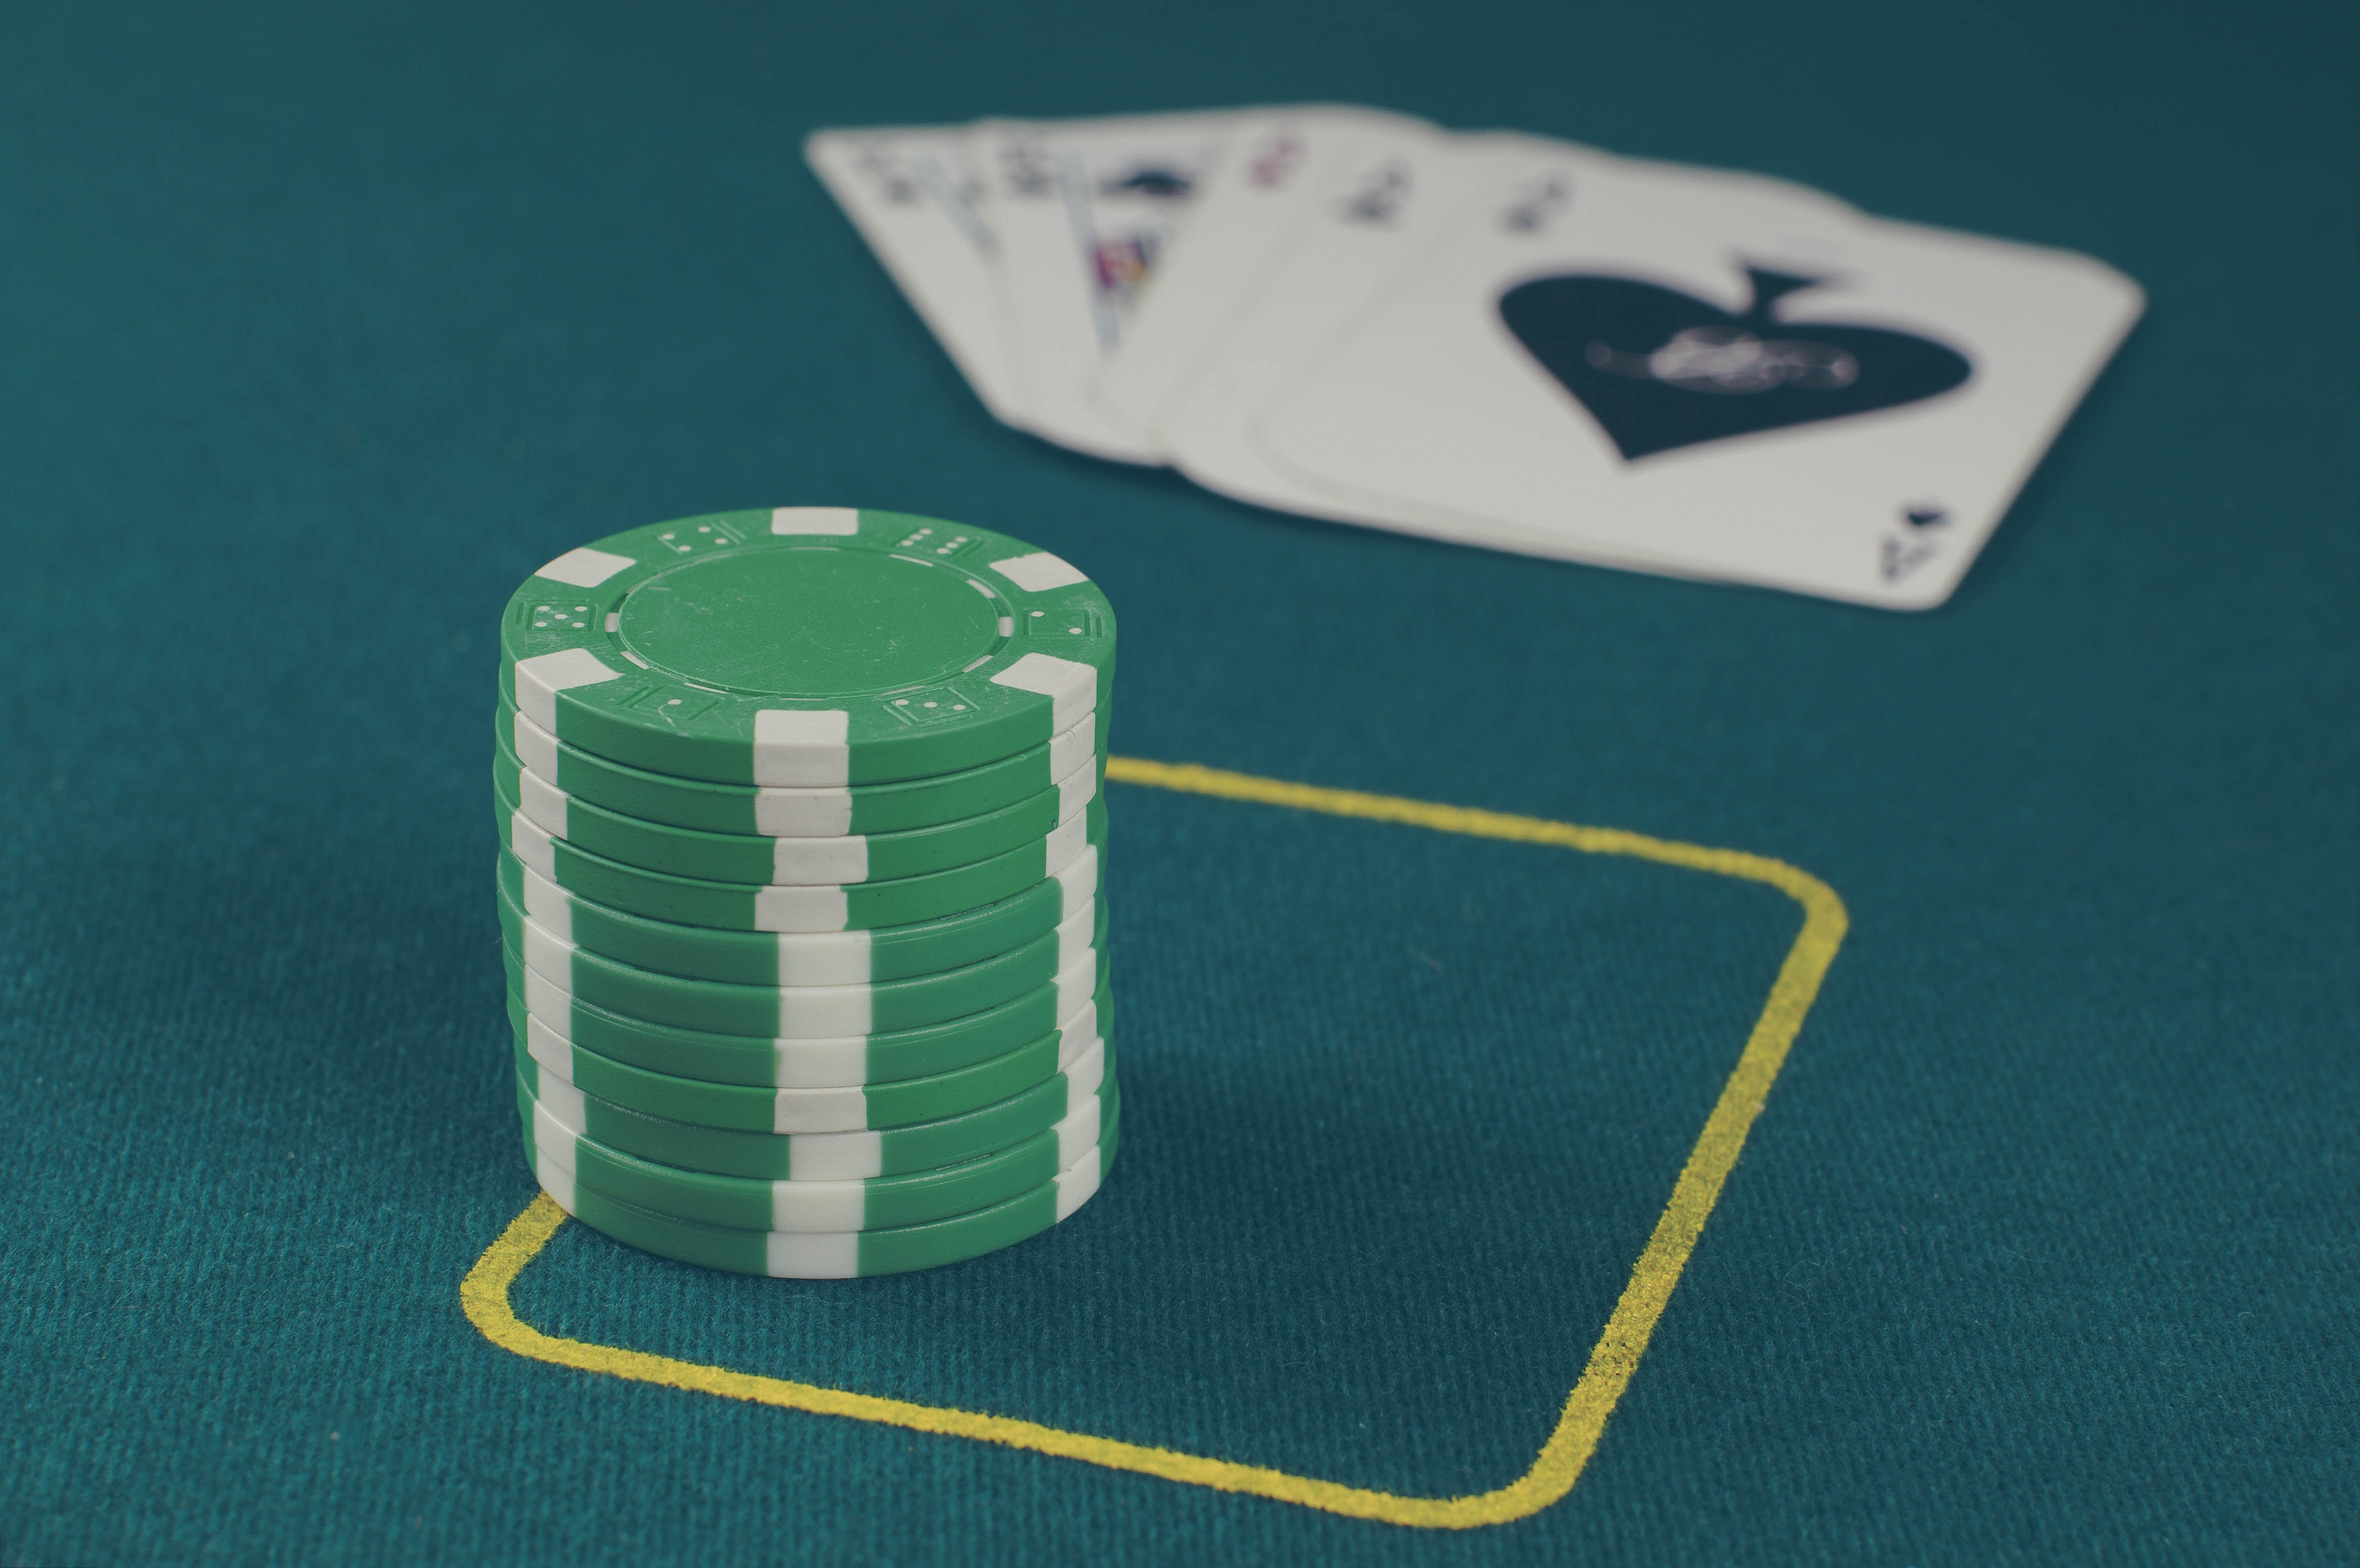 Bitcoin Gambling in South Africa